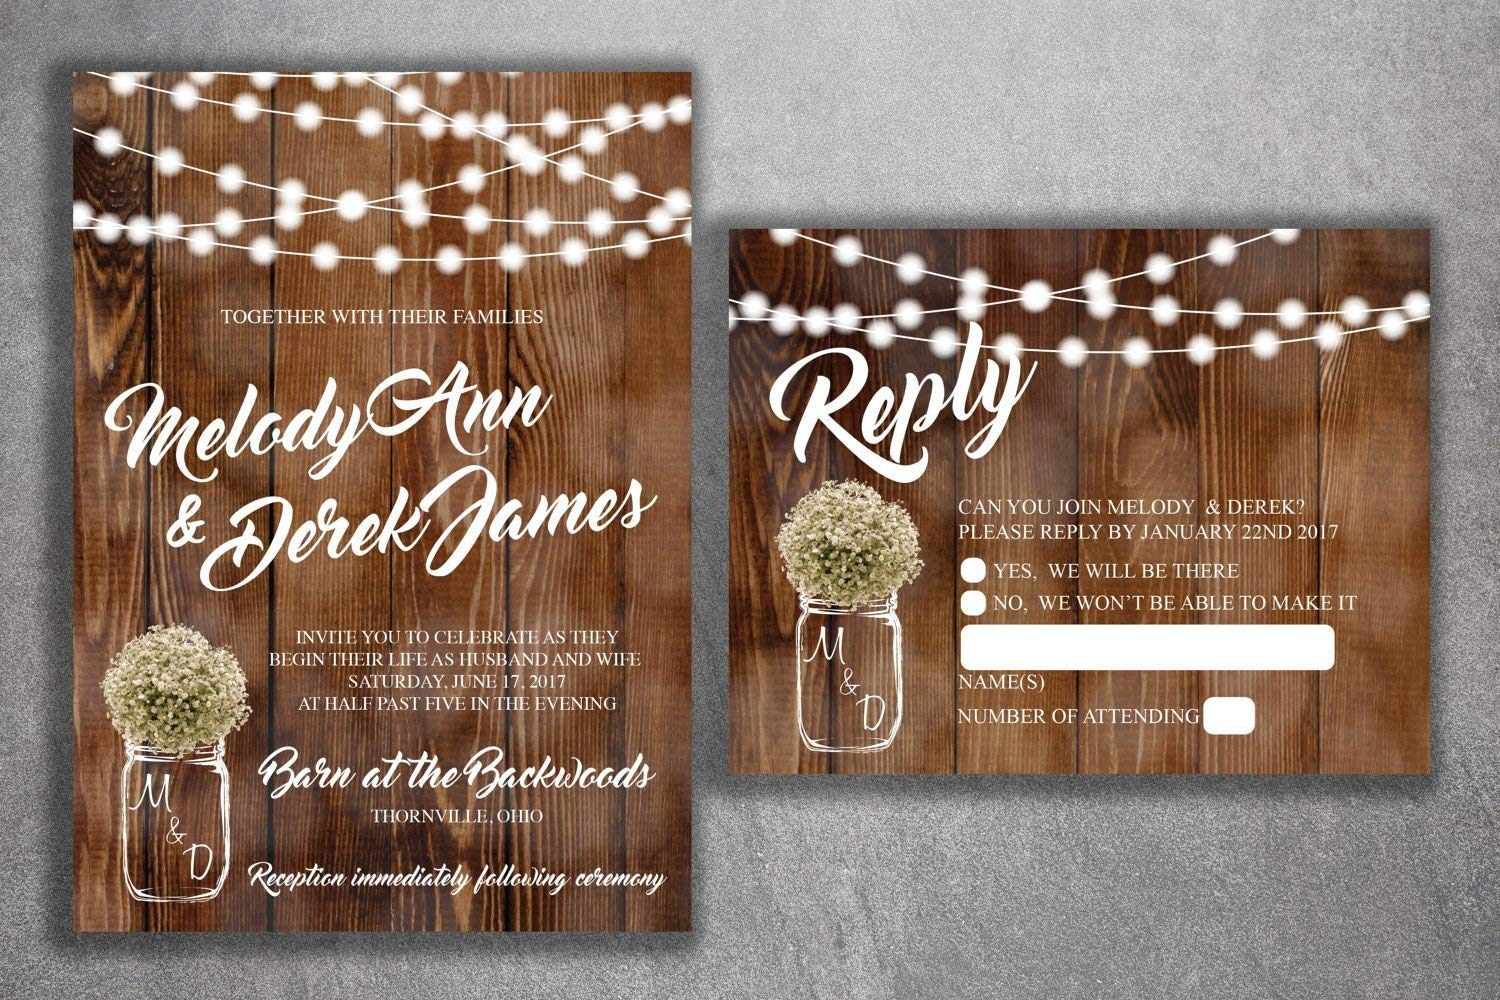 Free Mason Jar Wedding Invitation Template from images-na.ssl-images-amazon.com